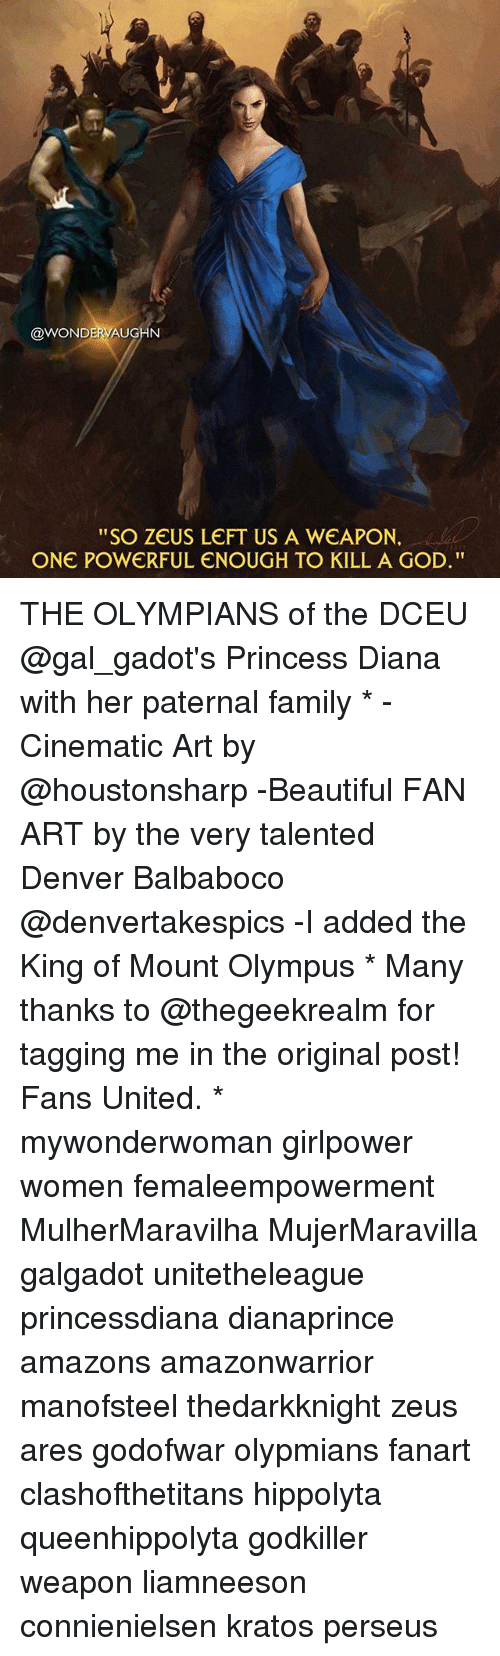 """perseus: @WONDERVAUGHN  """"SO ZEUS LEFT US A WEAPON.  ONE POWERFUL ENOUGH TO KILL A GOD"""" THE OLYMPIANS of the DCEU @gal_gadot's Princess Diana with her paternal family * -Cinematic Art by @houstonsharp -Beautiful FAN ART by the very talented Denver Balbaboco @denvertakespics -I added the King of Mount Olympus * Many thanks to @thegeekrealm for tagging me in the original post! Fans United. * mywonderwoman girlpower women femaleempowerment MulherMaravilha MujerMaravilla galgadot unitetheleague princessdiana dianaprince amazons amazonwarrior manofsteel thedarkknight zeus ares godofwar olypmians fanart clashofthetitans hippolyta queenhippolyta godkiller weapon liamneeson connienielsen kratos perseus"""